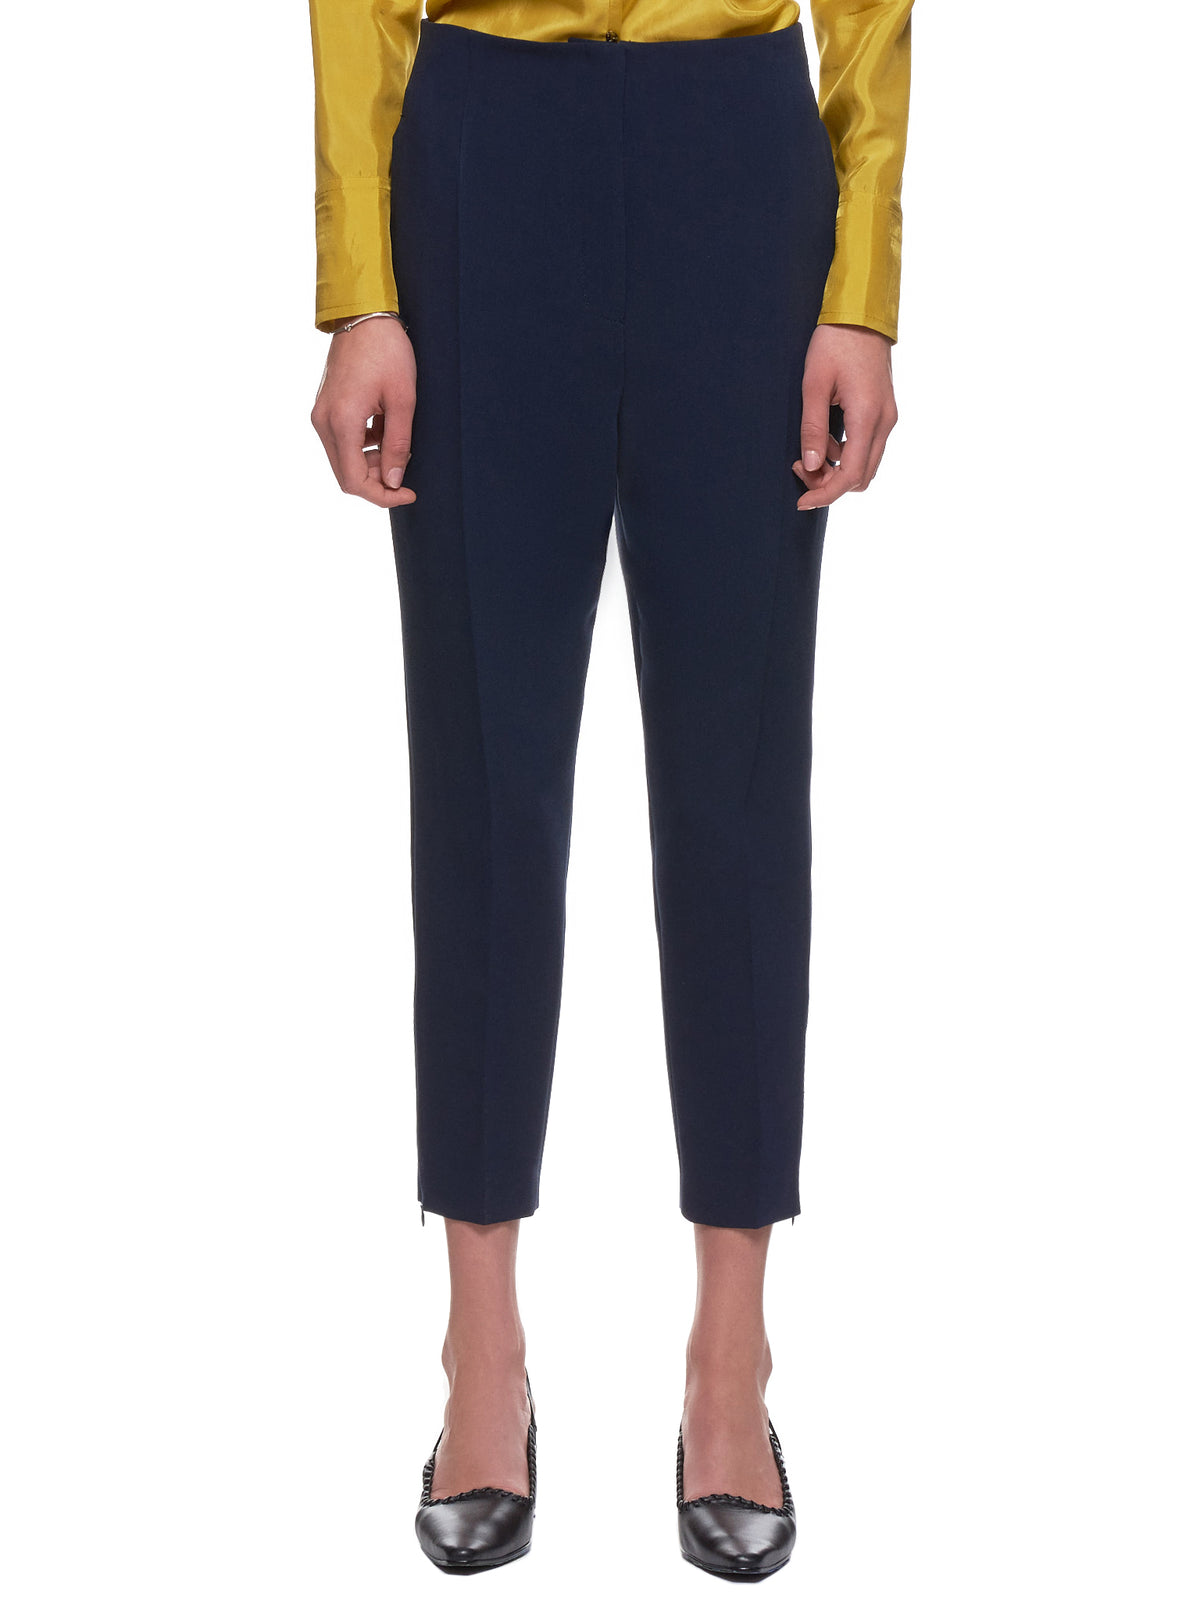 'Tuxedo Cigarette Trousers' (10-CIGARETTE-NAVY)